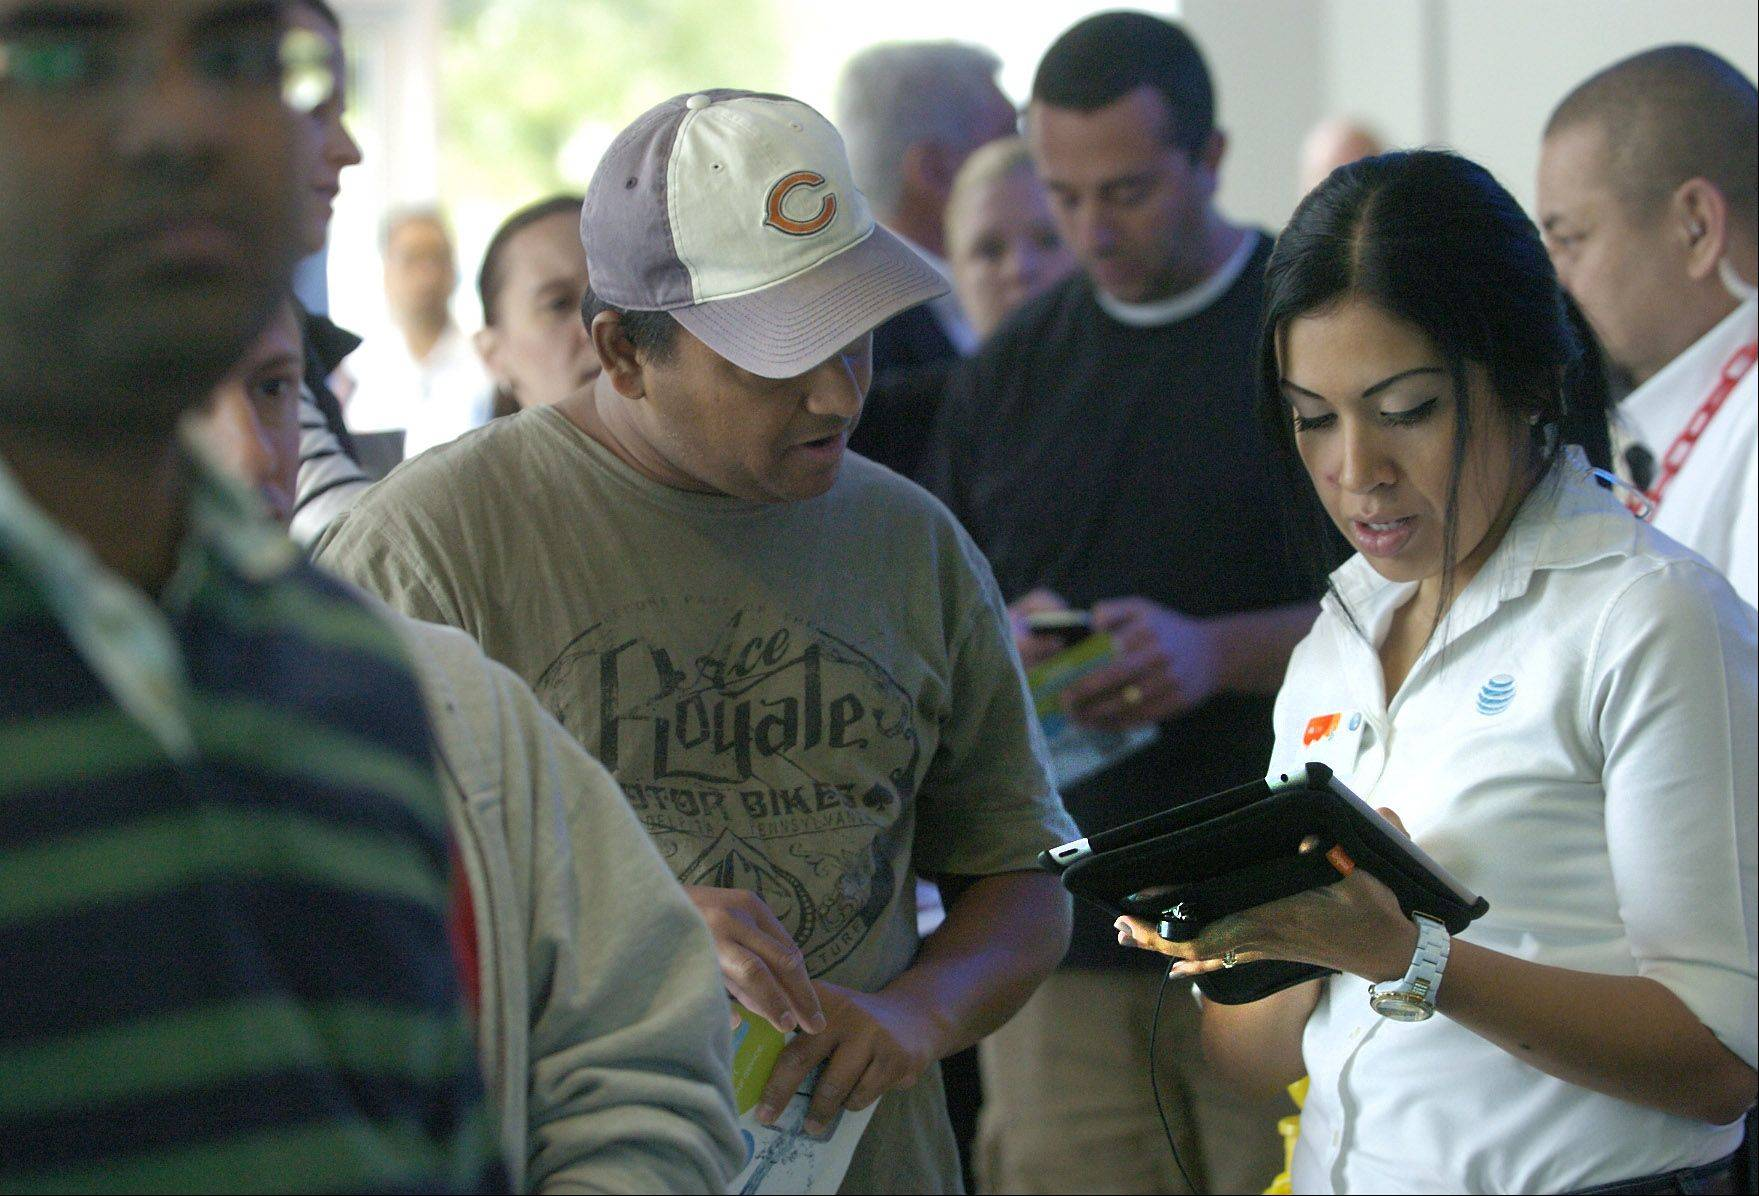 Bob Chwedyk/bchwedyk@dailyherald.comSales support coordinator Juanita Rodriguez sign customers in as they wait in line to purchase the new iPhone 5 at the AT&T Store in Arlington Heights.